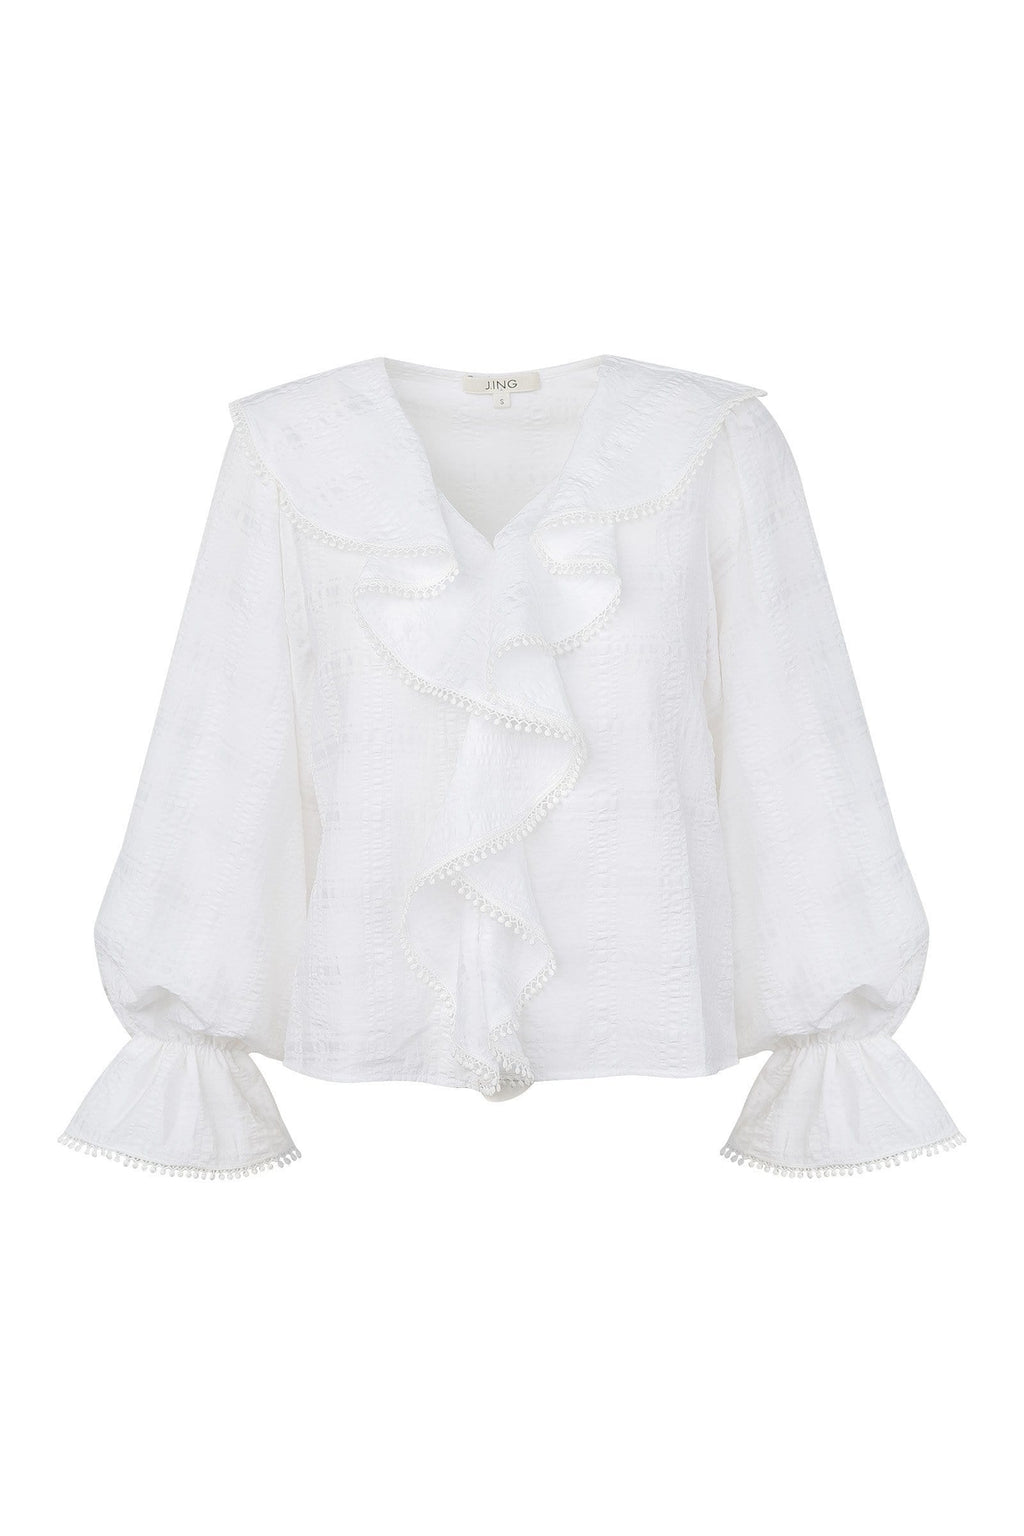 Eleanor White Ruffled Blouse | J.ING Women's Apparel